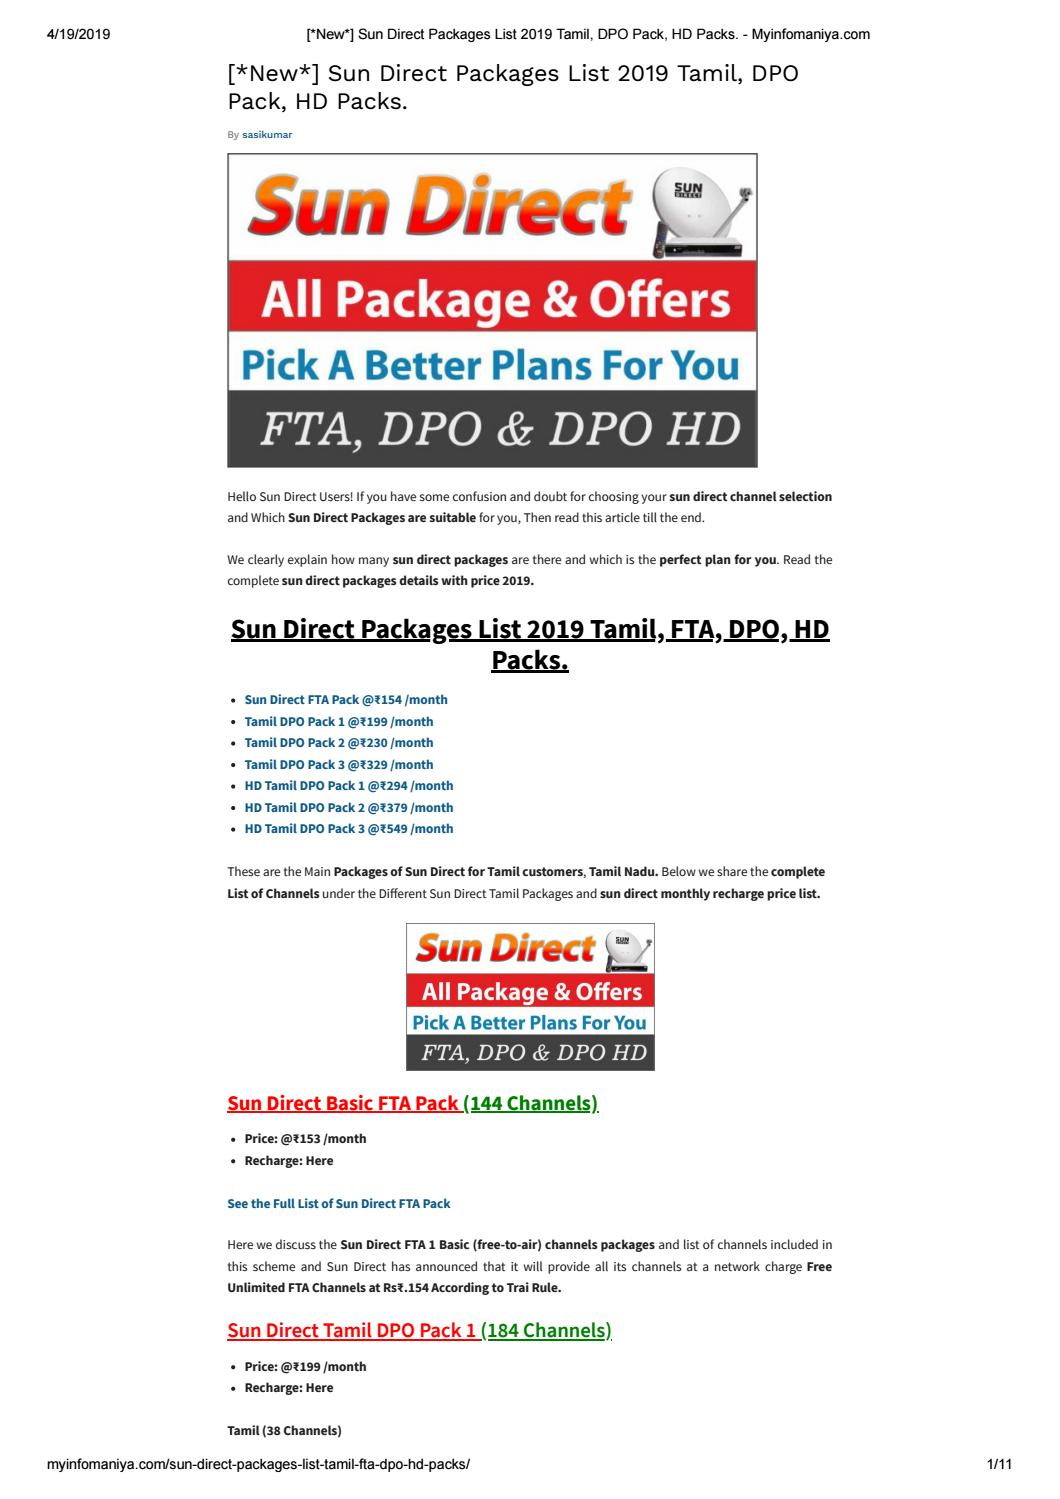 New*] Sun Direct Packages List 2019 Tamil, DPO Pack, HD